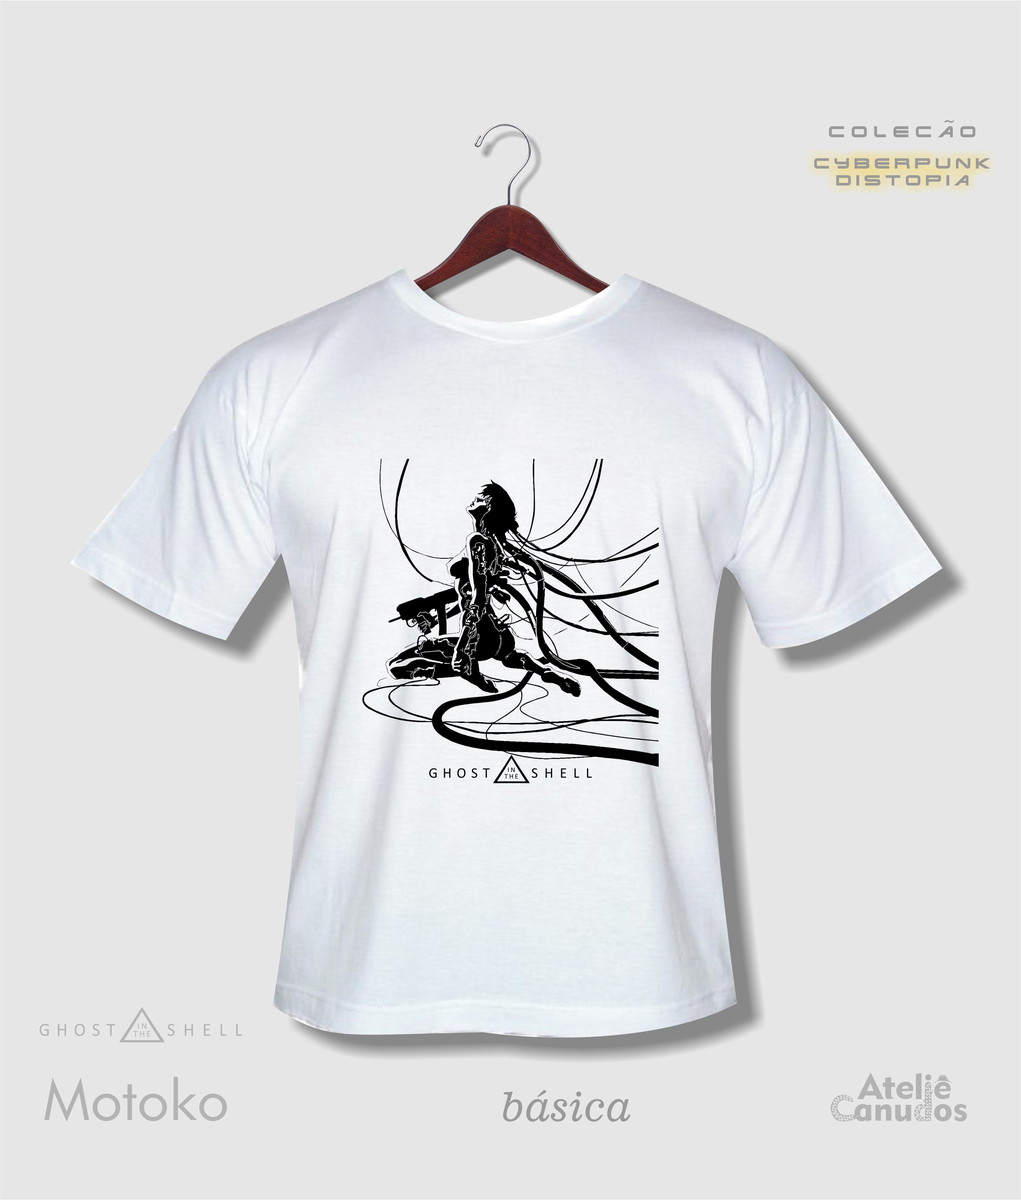 addb6a0ae1 Camisa Ghost in the Shell - branca no Elo7